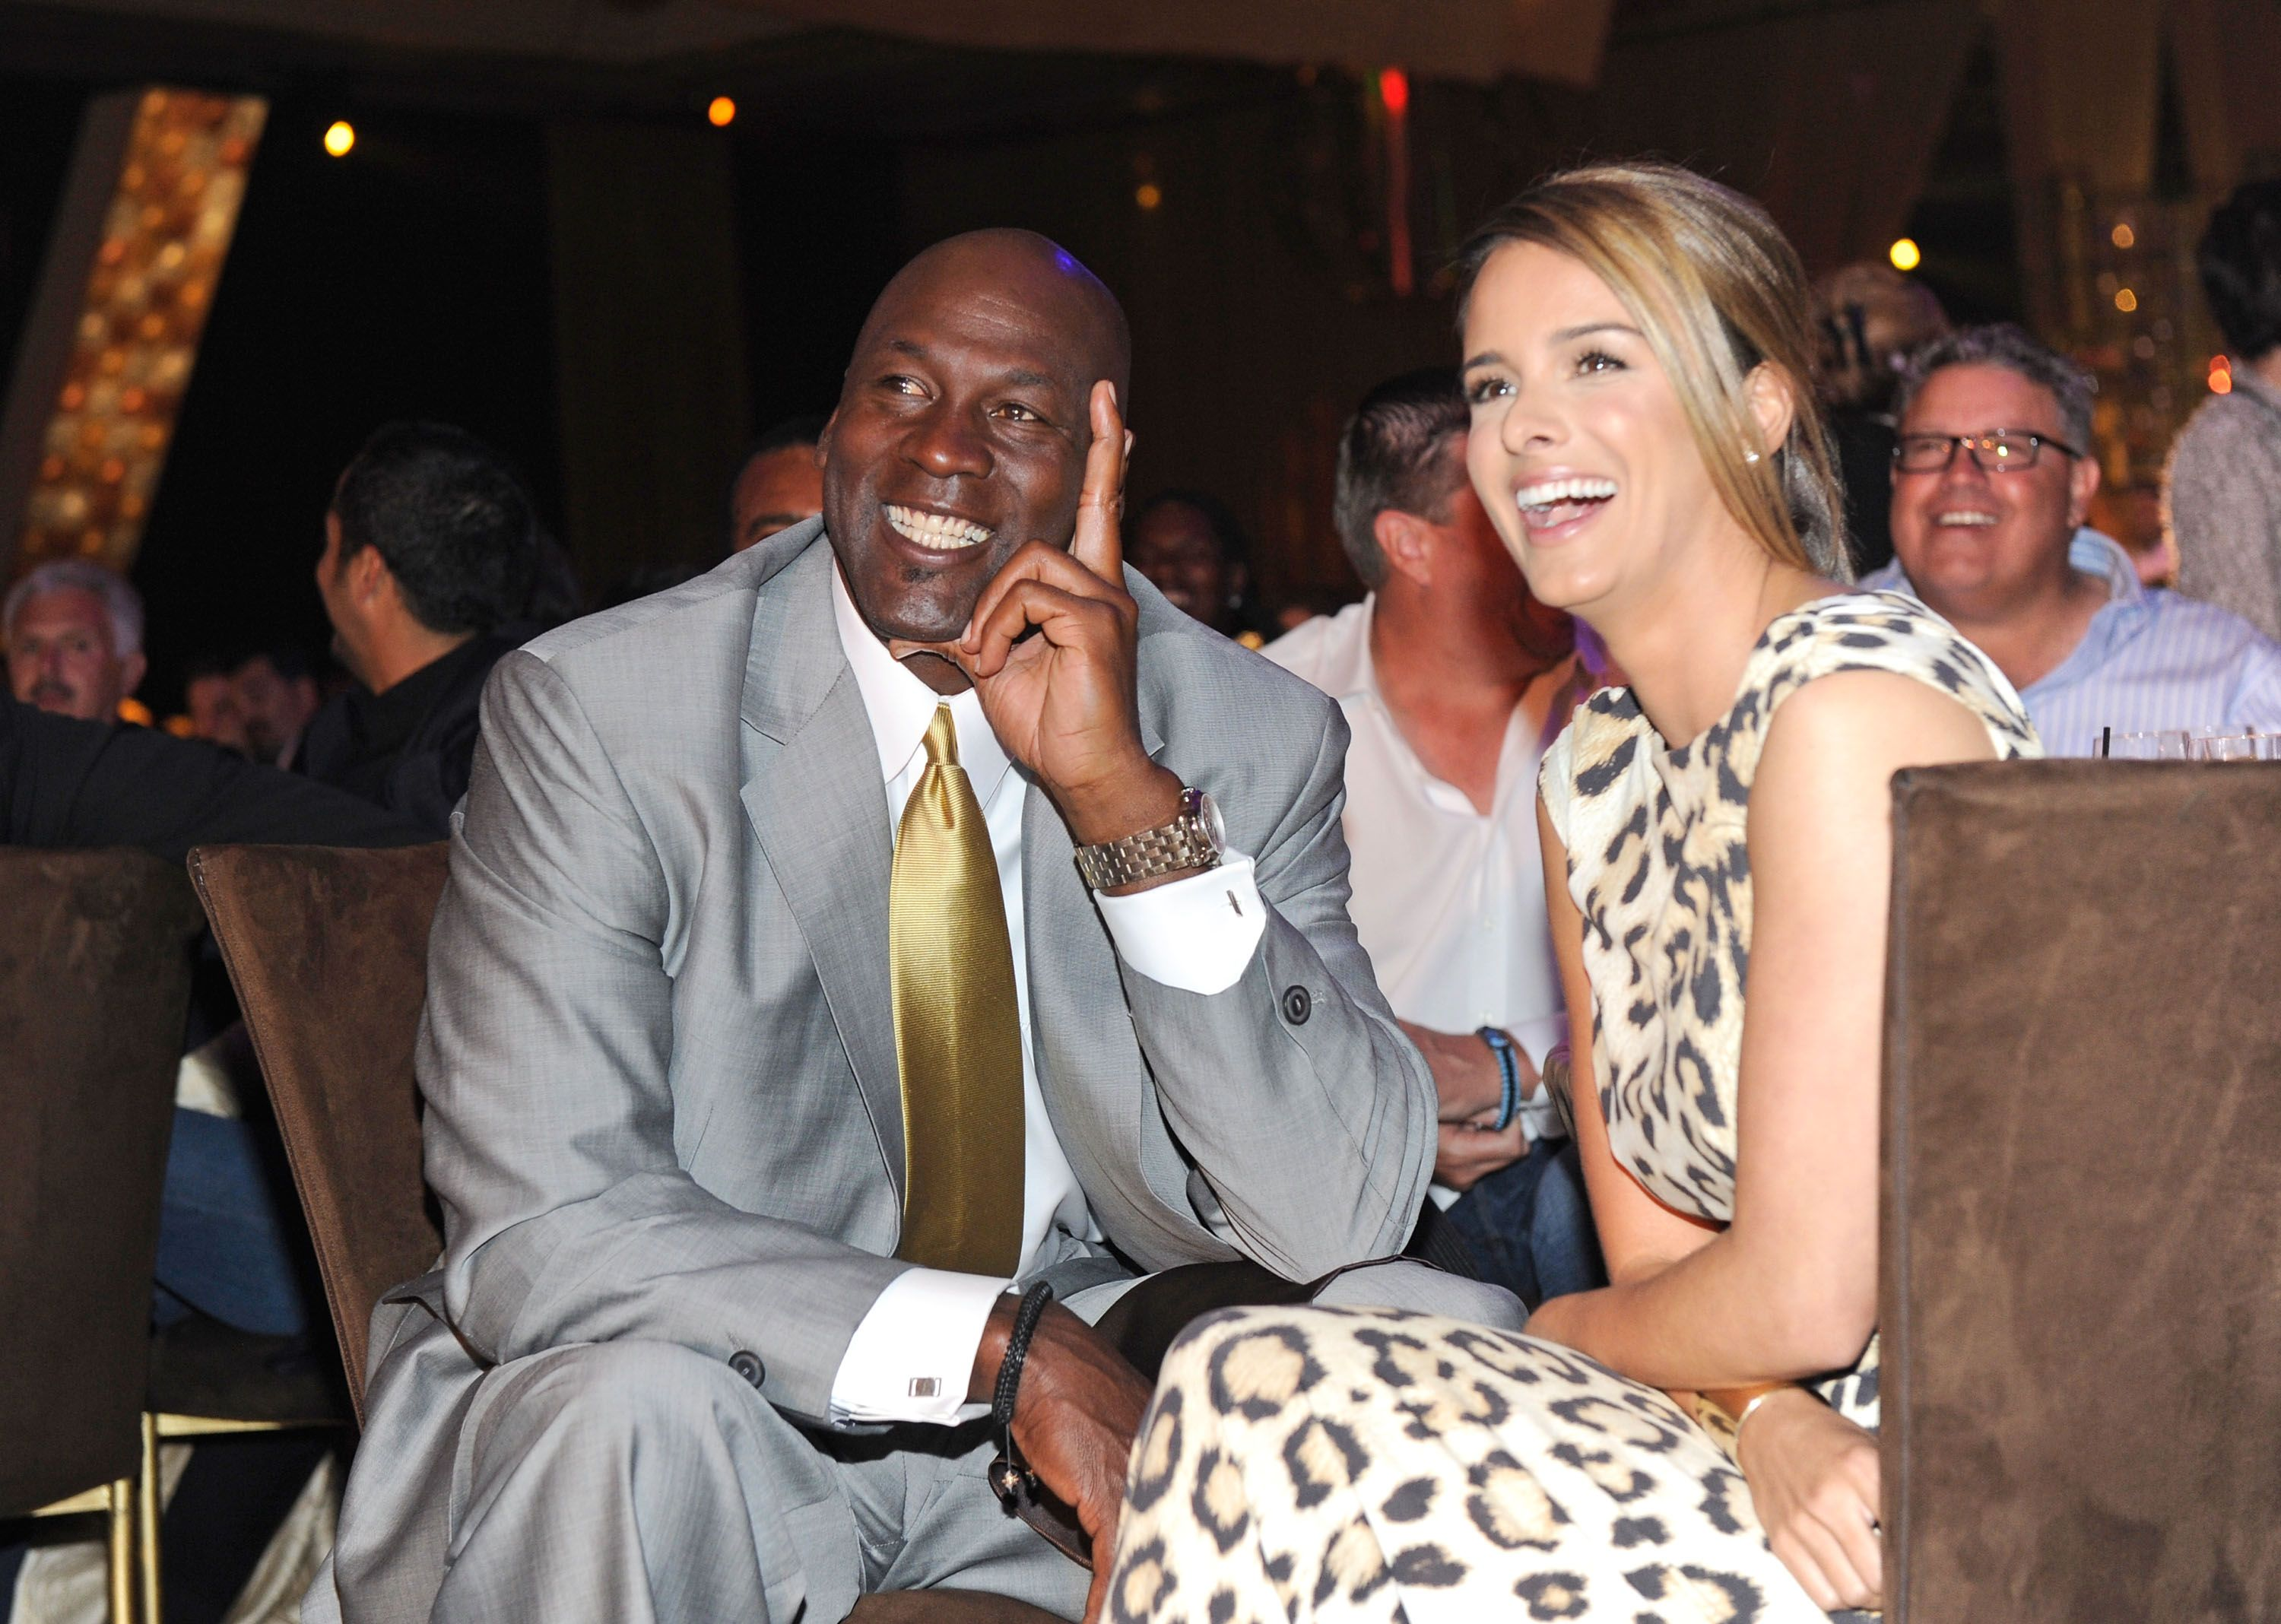 Michael Jordan and Yvette Prieto attend the 11th annual Michael Jordan Celebrity Invitational gala at the Aria Resort & Casino at CityCenter March 30, 2011 in Las Vegas, Nevada | Photo: Getty Images